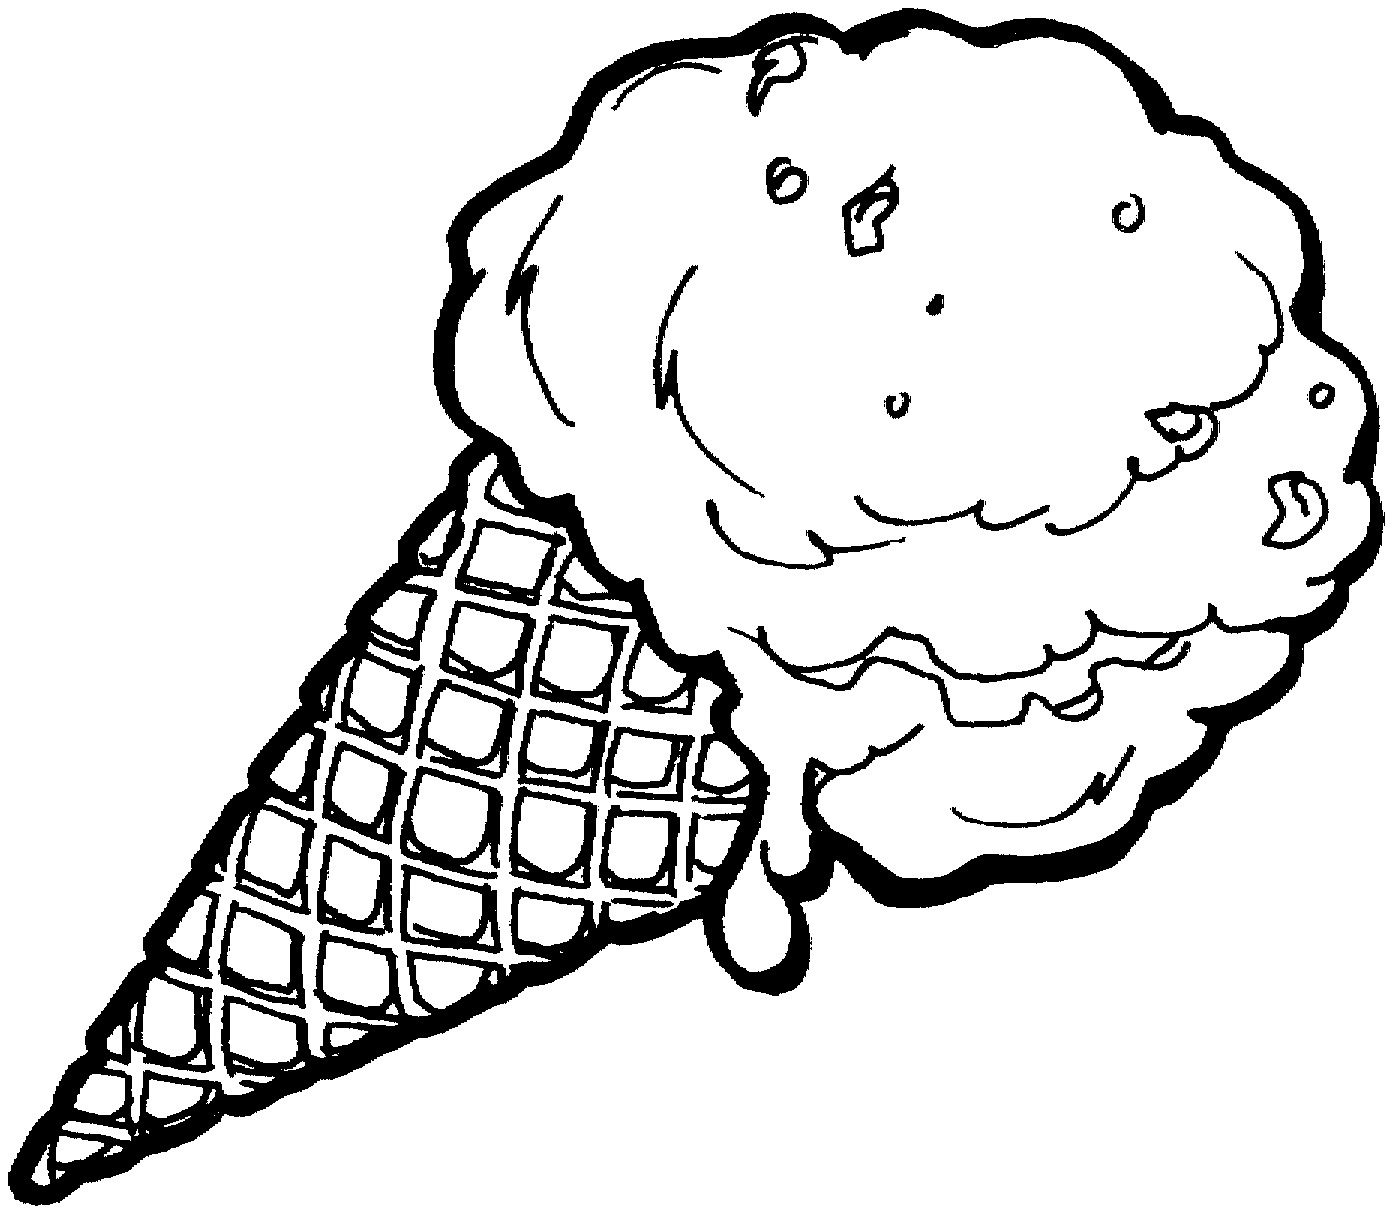 Ice Cream Coloring Pages - Free Printable Ice Cream Coloring Pages for Kids